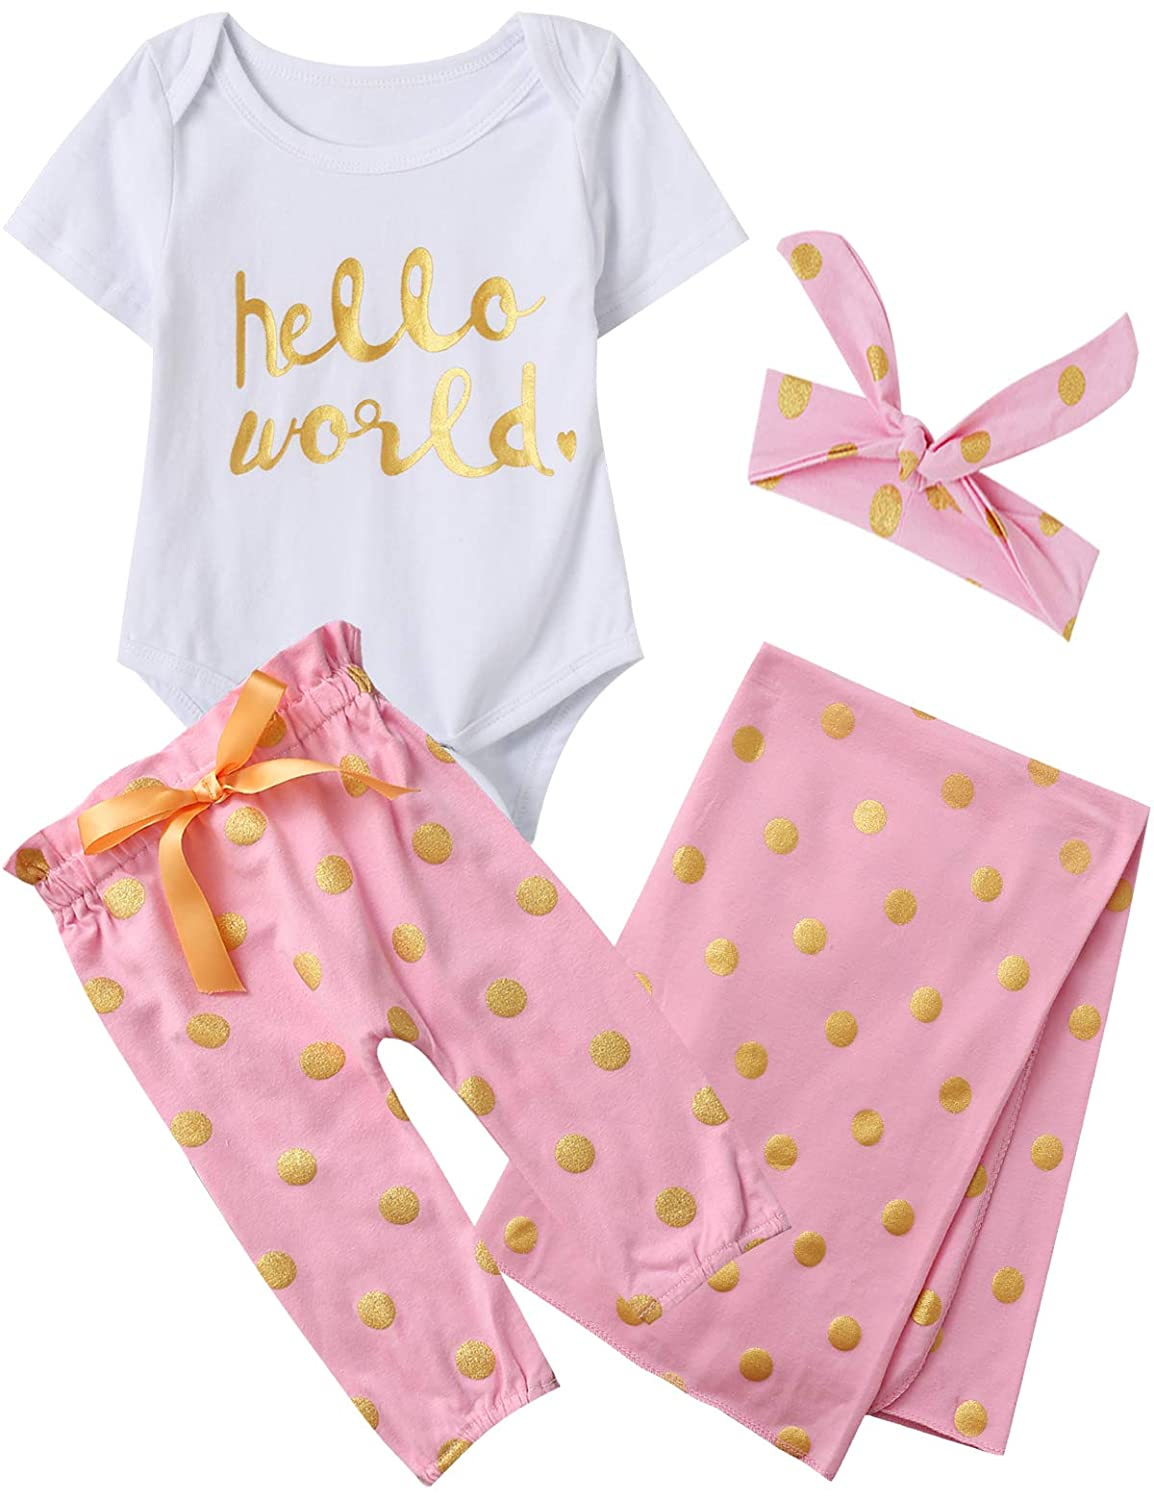 Dramiposs Newborn Baby Girl Hello World Outfit Polka Dot Floral Bodysuit with Blanket